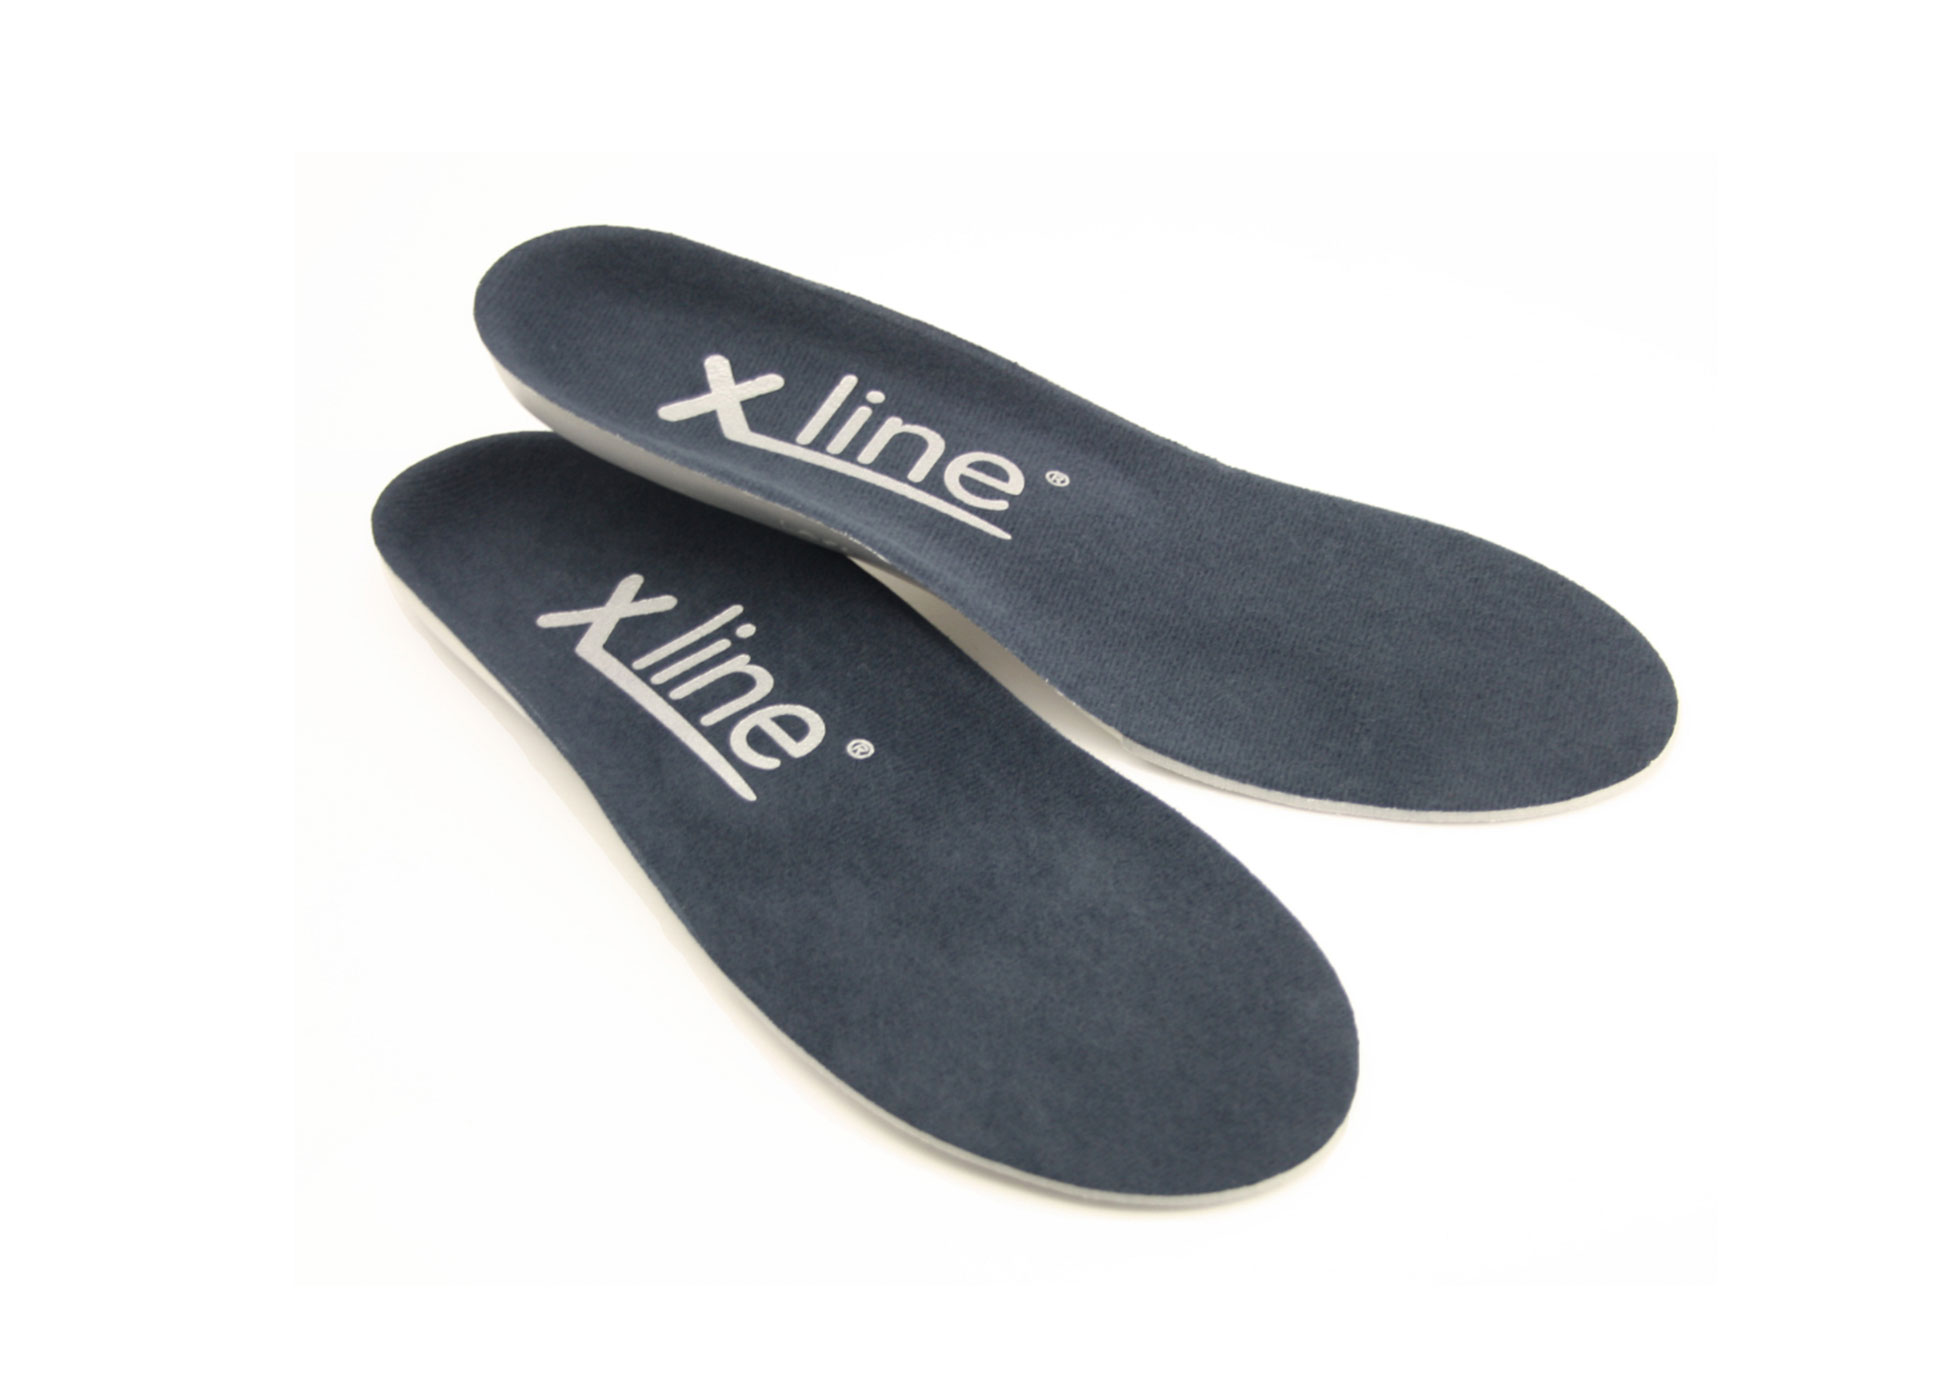 X Line - Condition Specific - PF - For Plantar Fasciitis - Medium